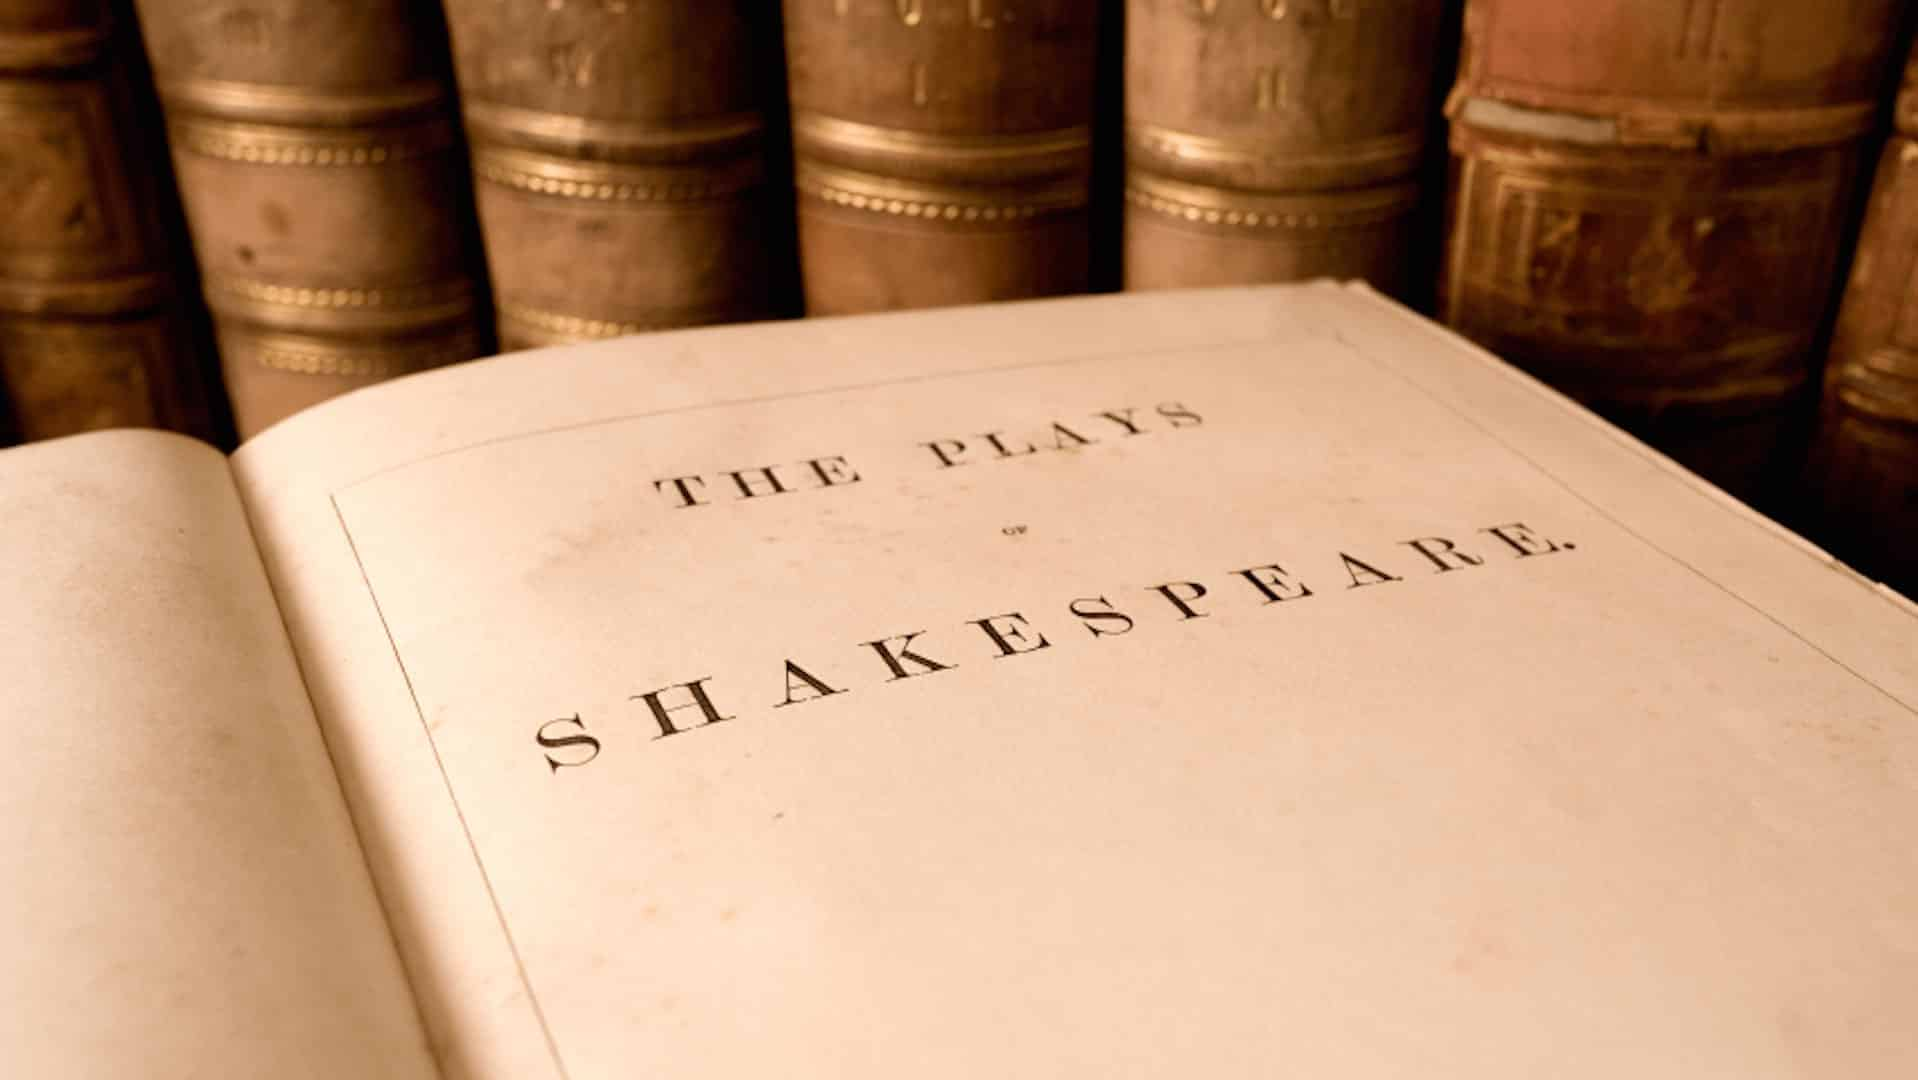 The Plays of Shakespeare title page